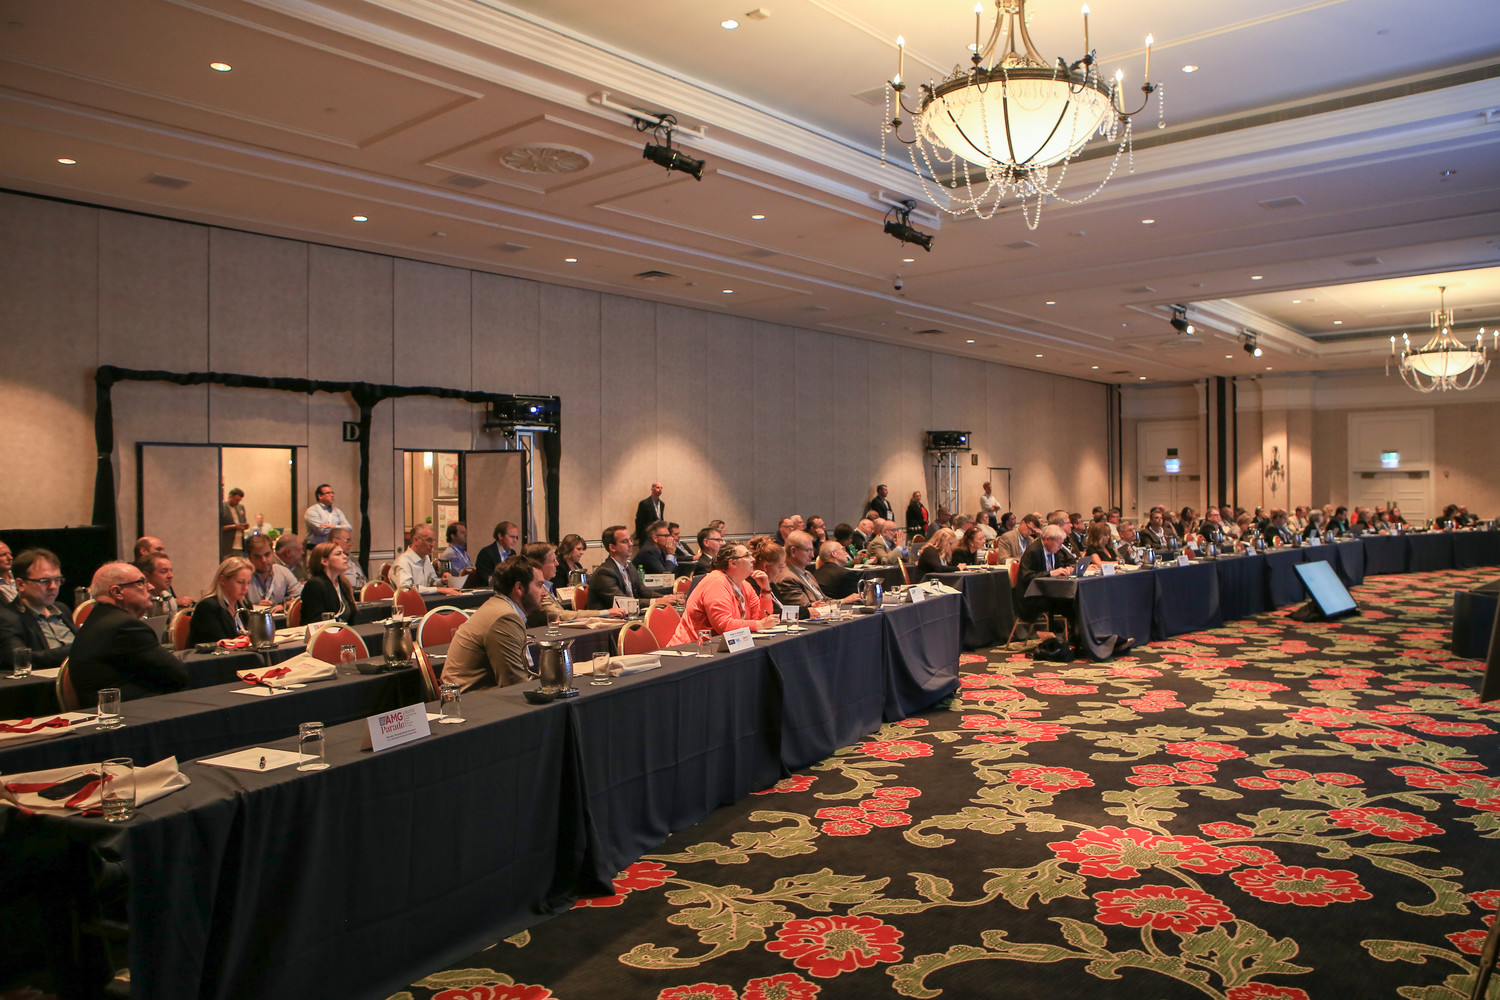 The first-ever joint Annual Meeting of Inland and the Southern Newspaper Publishers Association attracted a large and attentive audience, seen here gathering for the opening session.